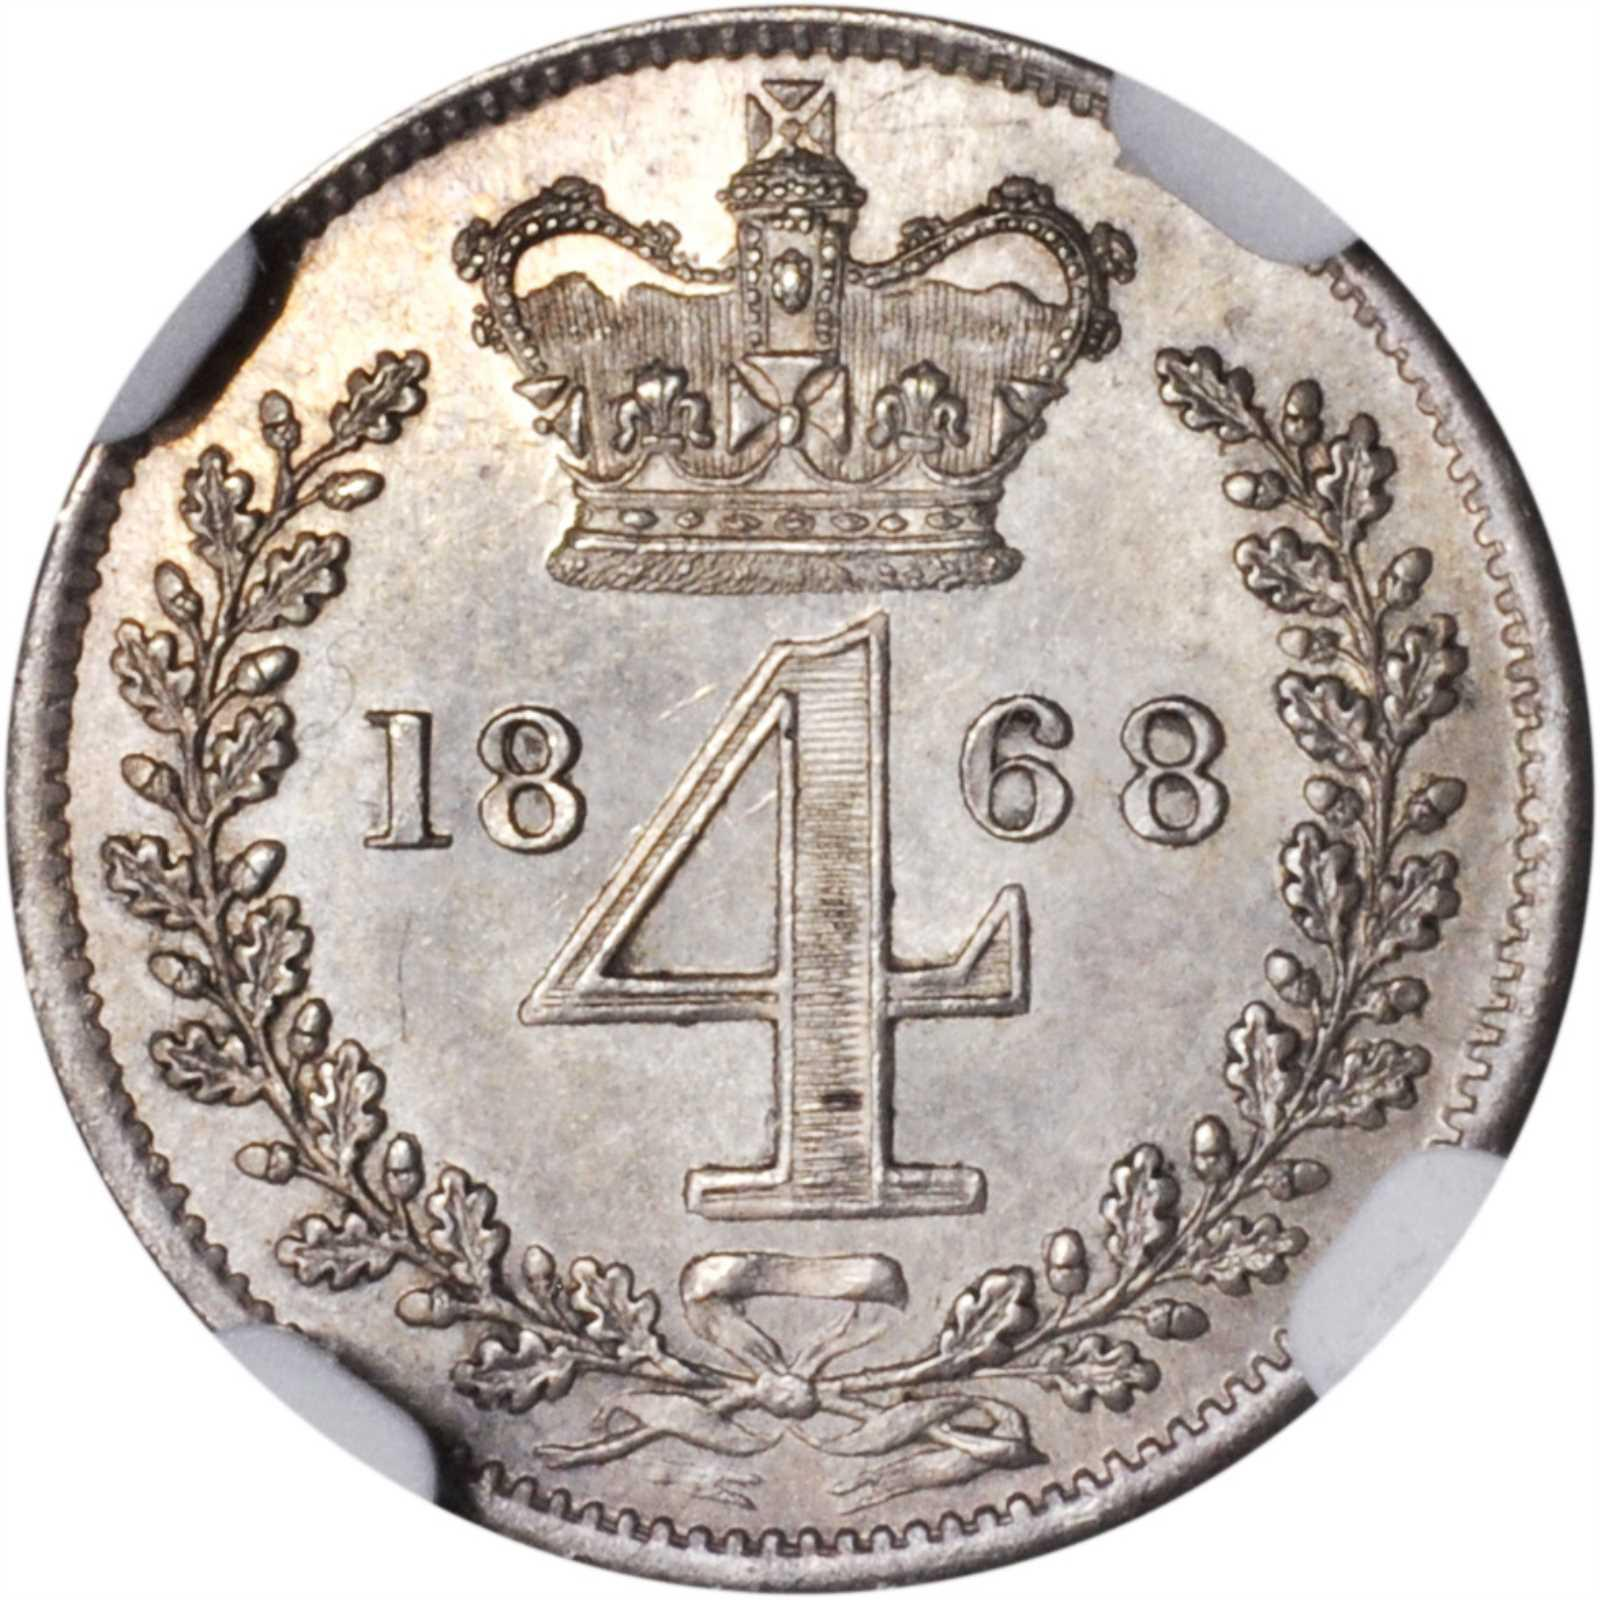 Fourpence 1868 (Maundy): Photo Great Britain 1868 4 pence - CoinFactsWiki